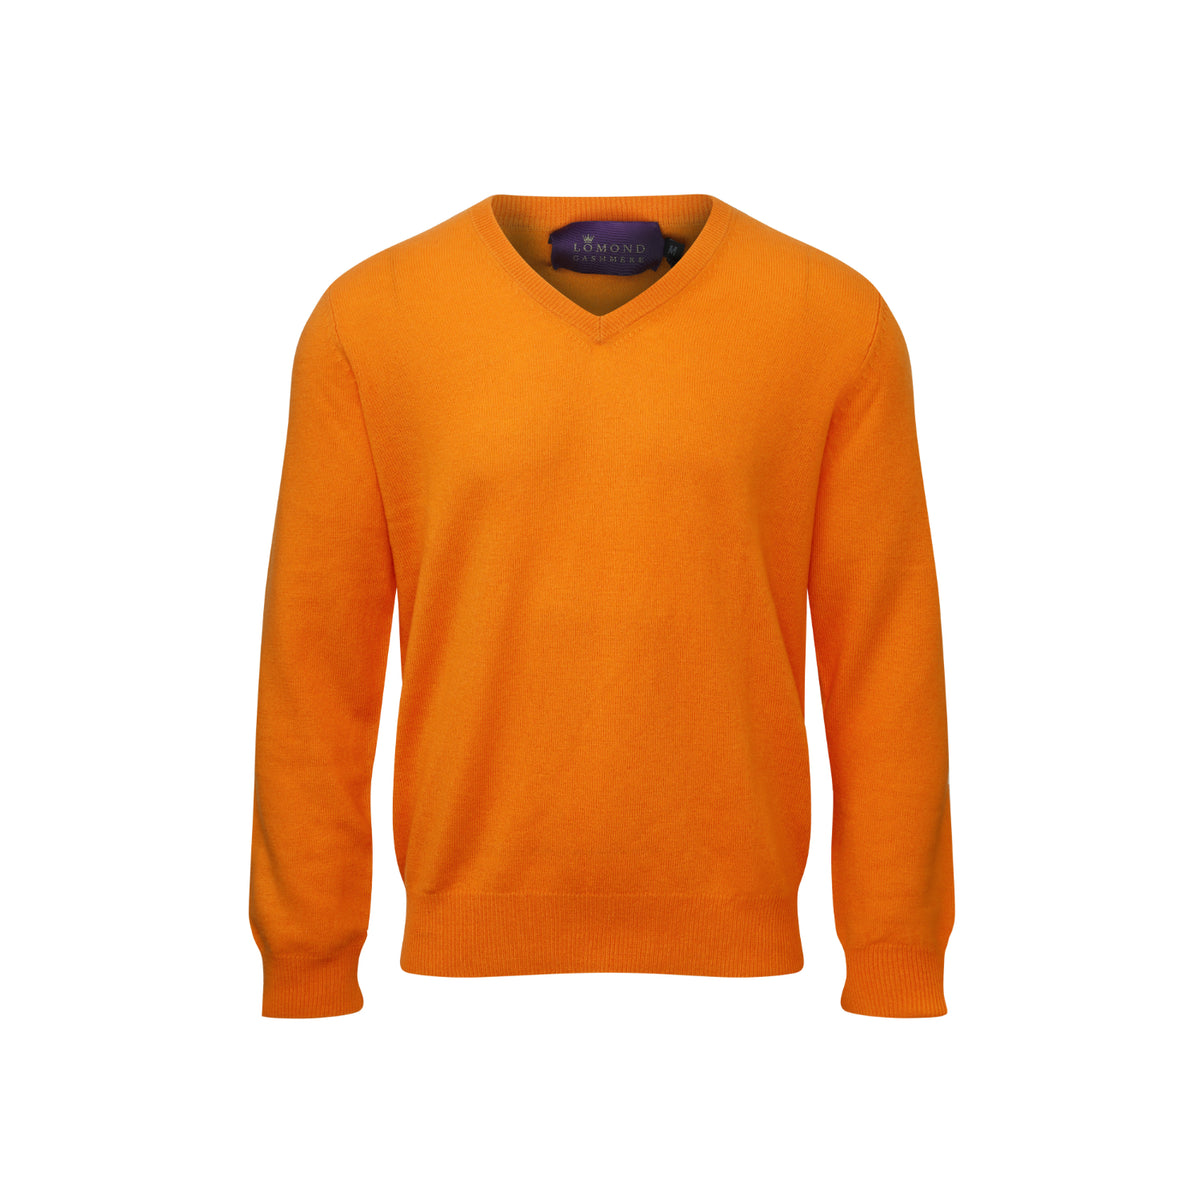 Orange Mens Cashmere V neck Sweater | Jumper | buy now at The Cashmere Choice London